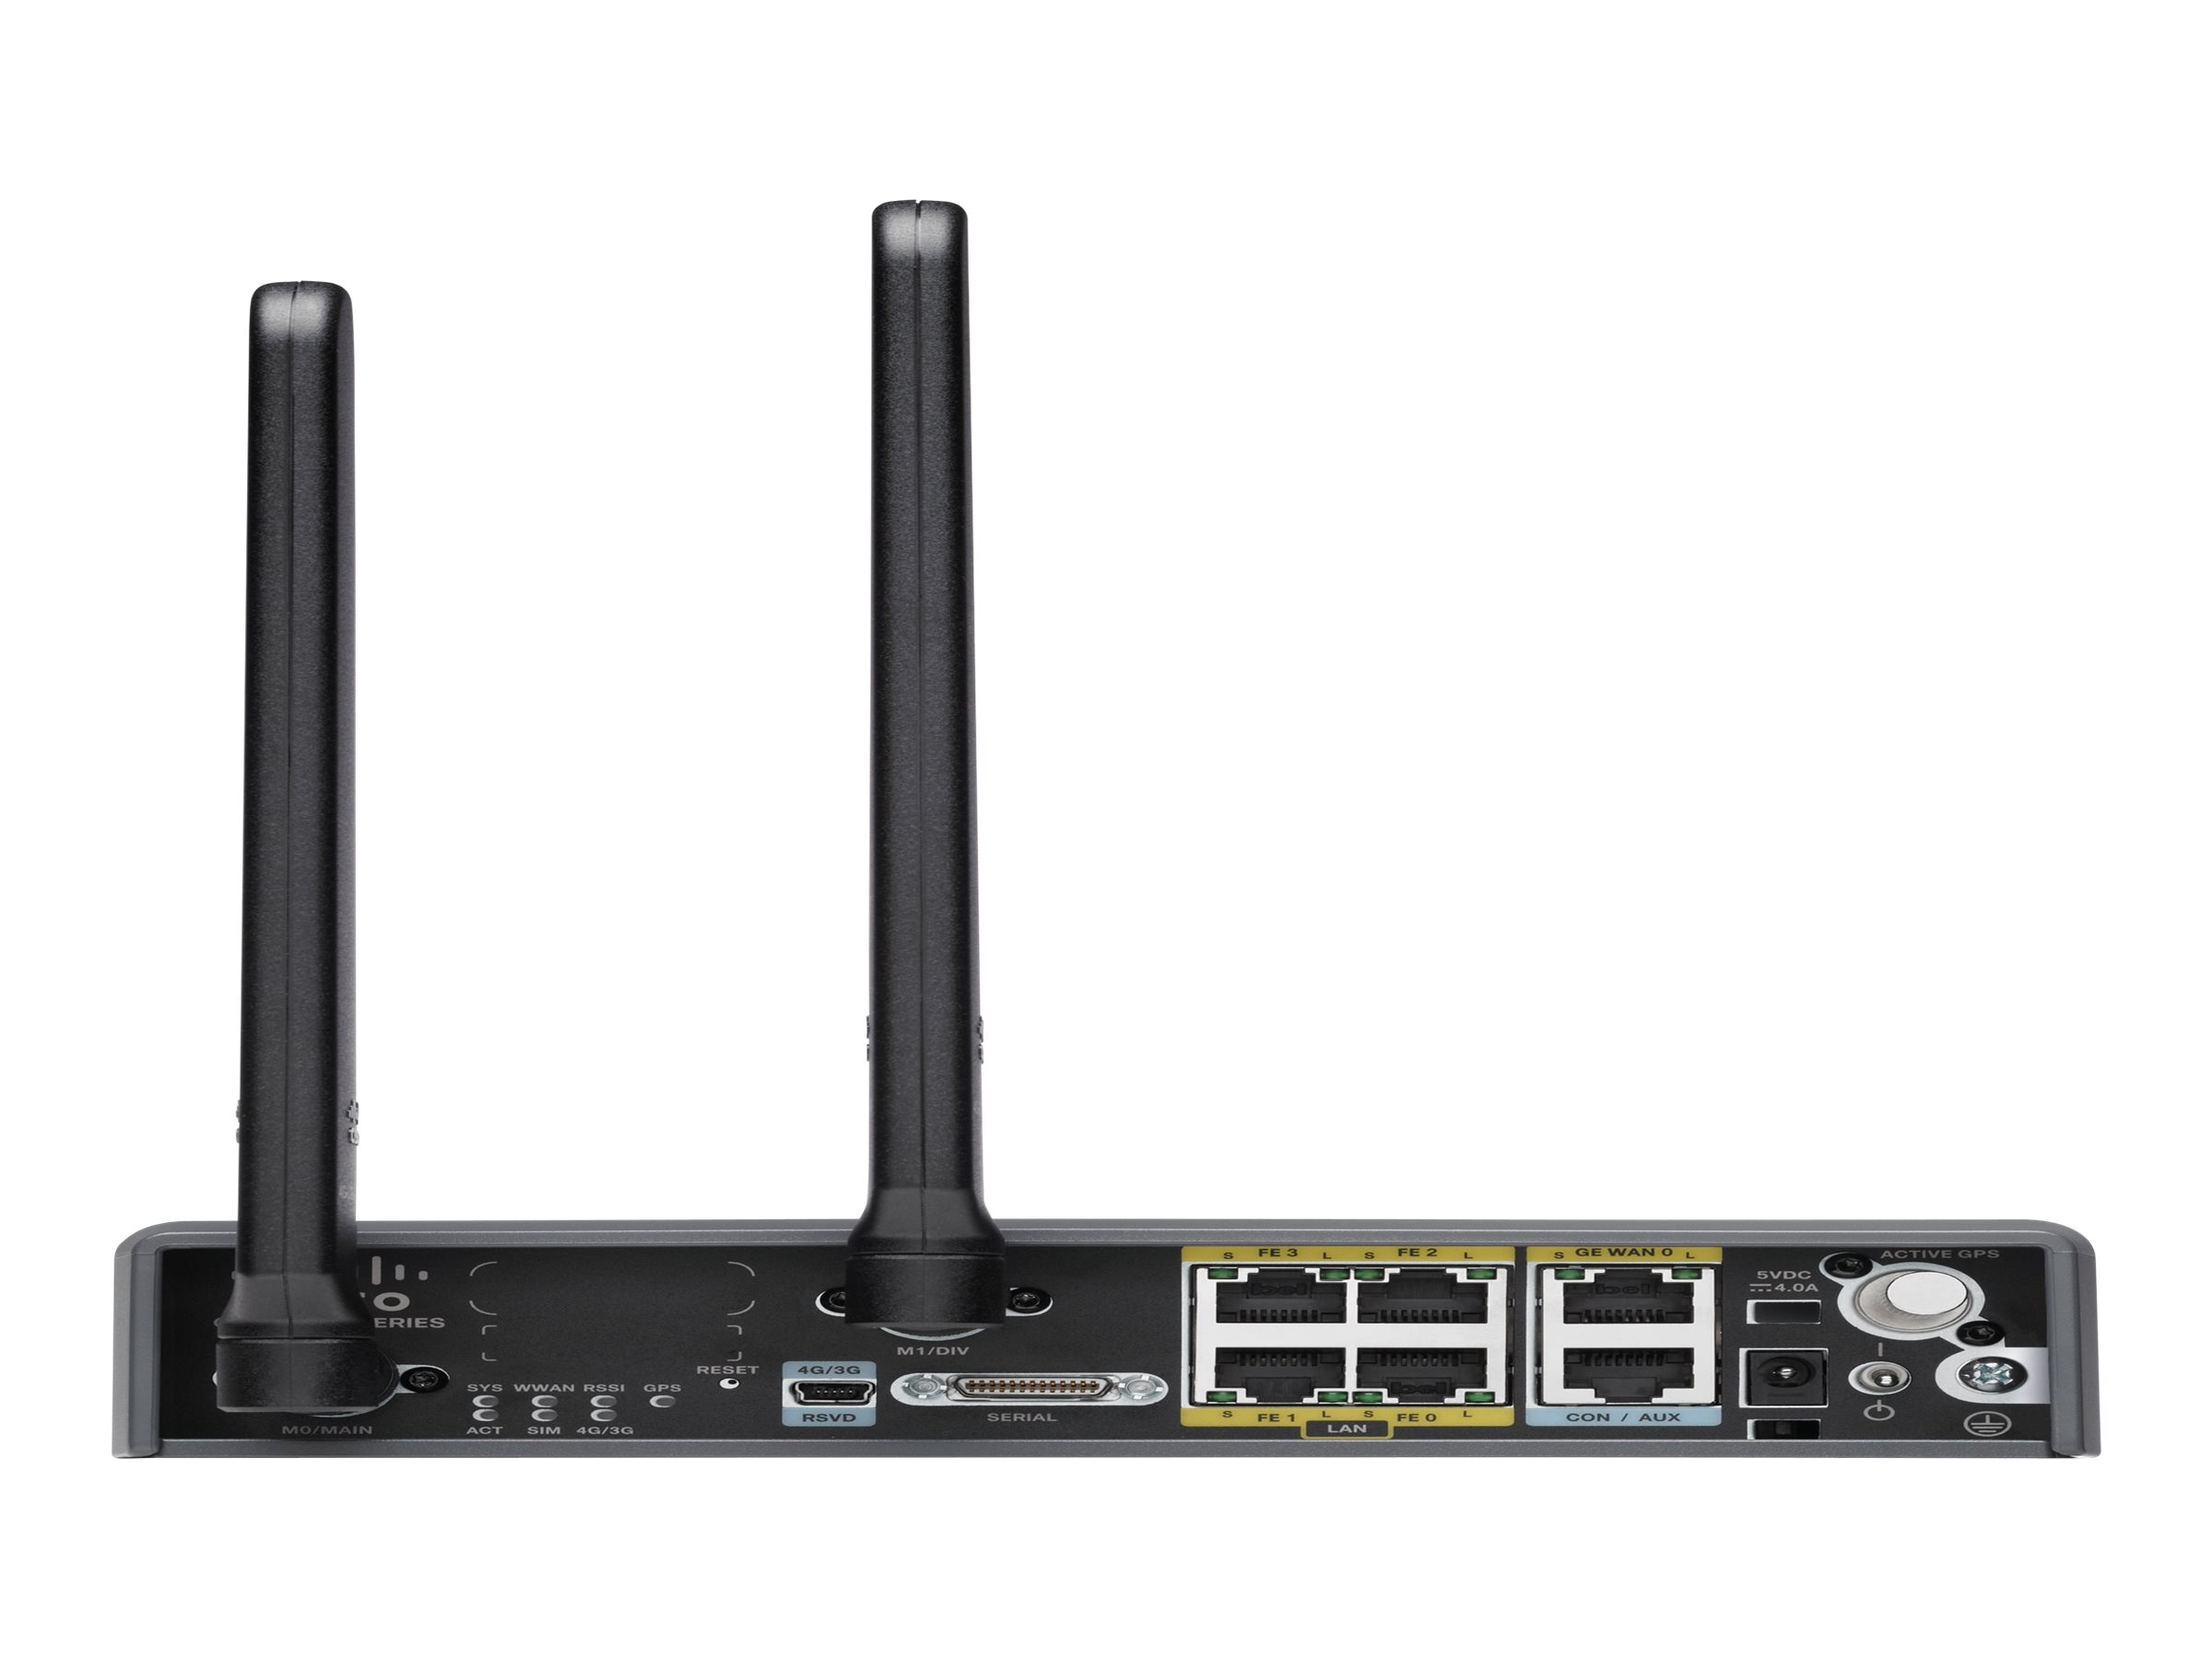 Cisco C819 Compact Hardened 4G LTE M2M Gateway for ATT